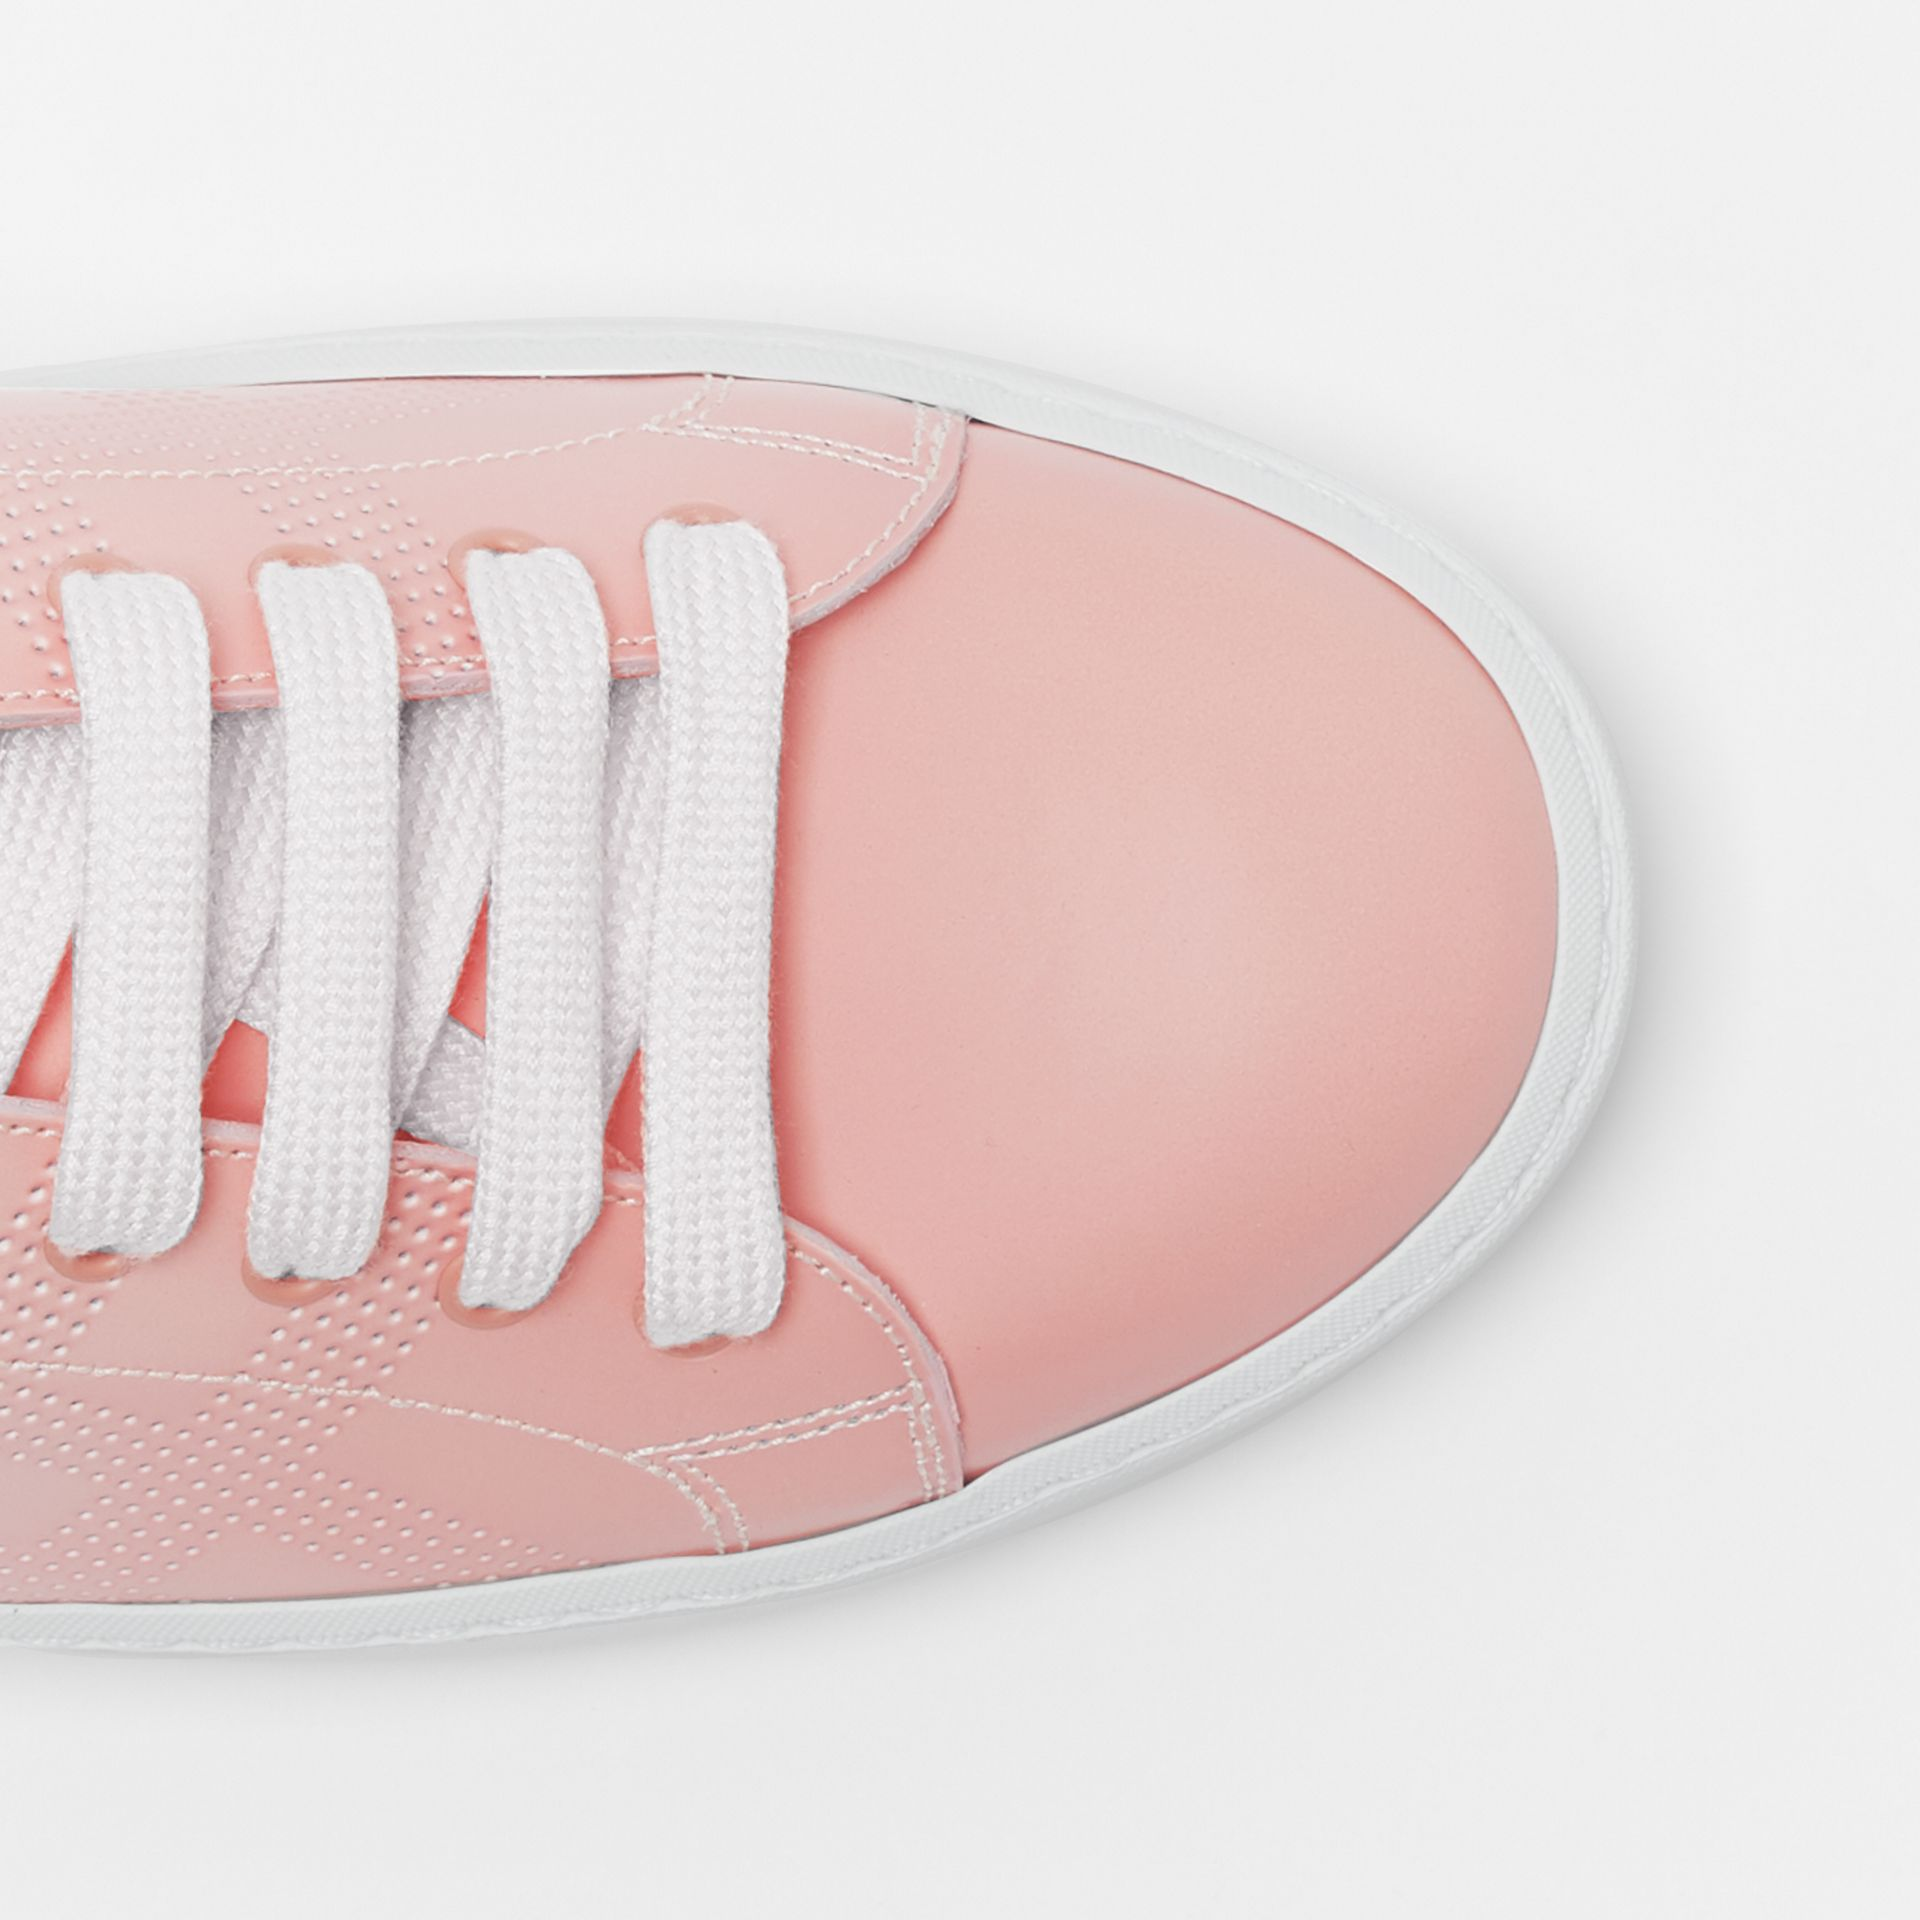 Perforated Check Dégradé Leather Sneakers in Sugar Pink - Women | Burberry United States - gallery image 2